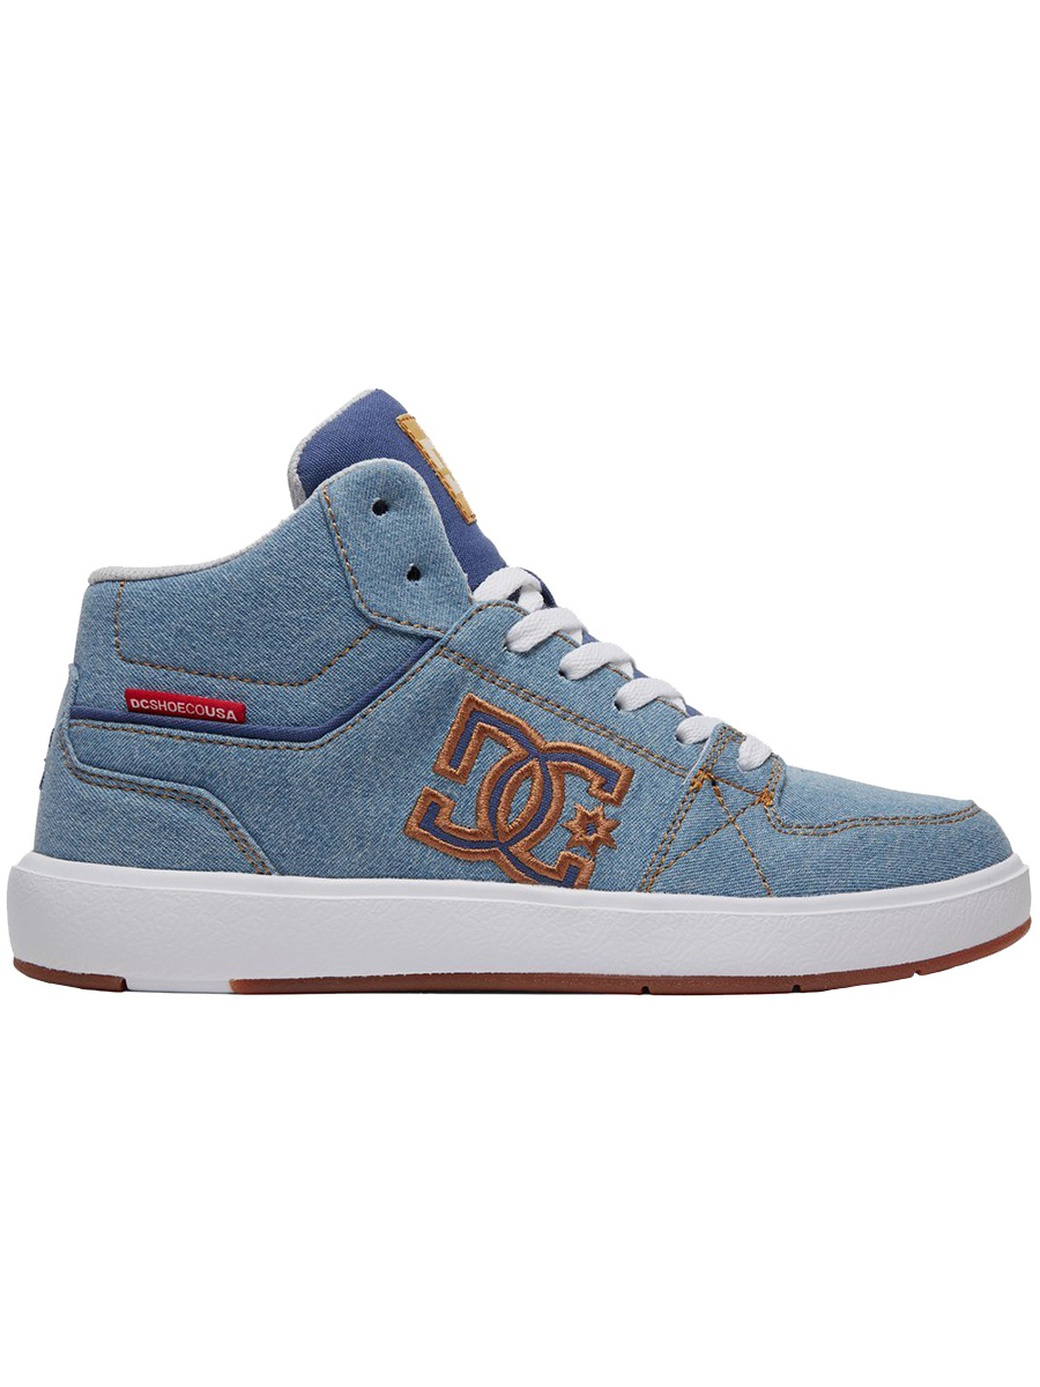 Кеды Dc Shoes ADJS100122-DNM, Синий, 7.5B фото